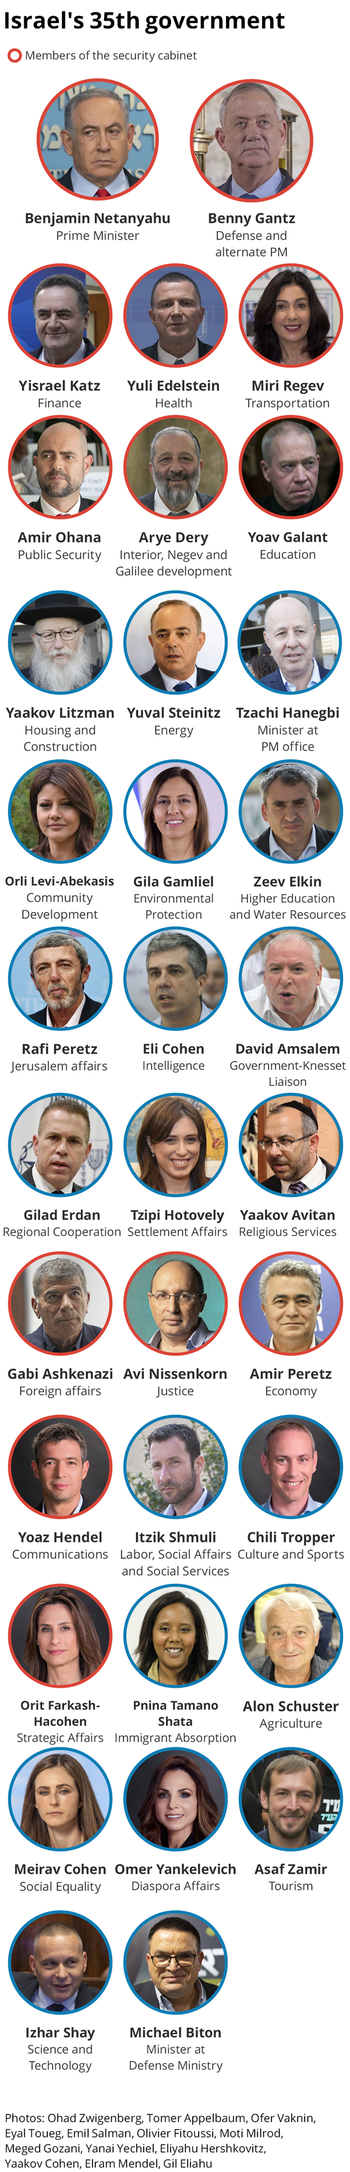 Israel's 35th government.